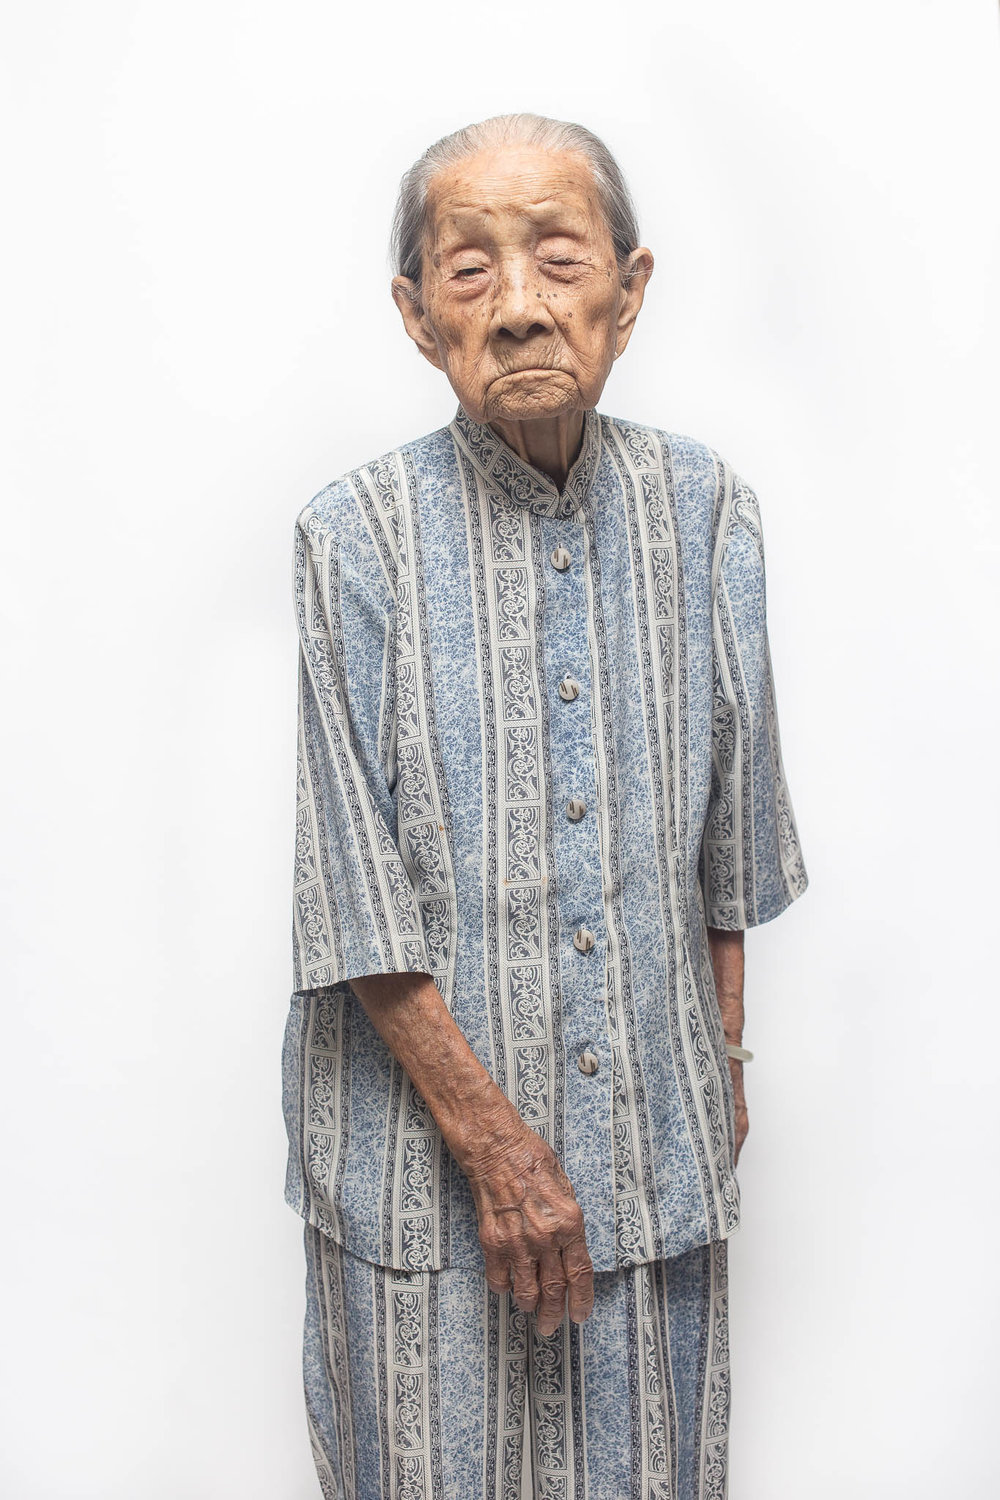 singapore-photographer-centenarians-dukenus-care-zz-2.jpg